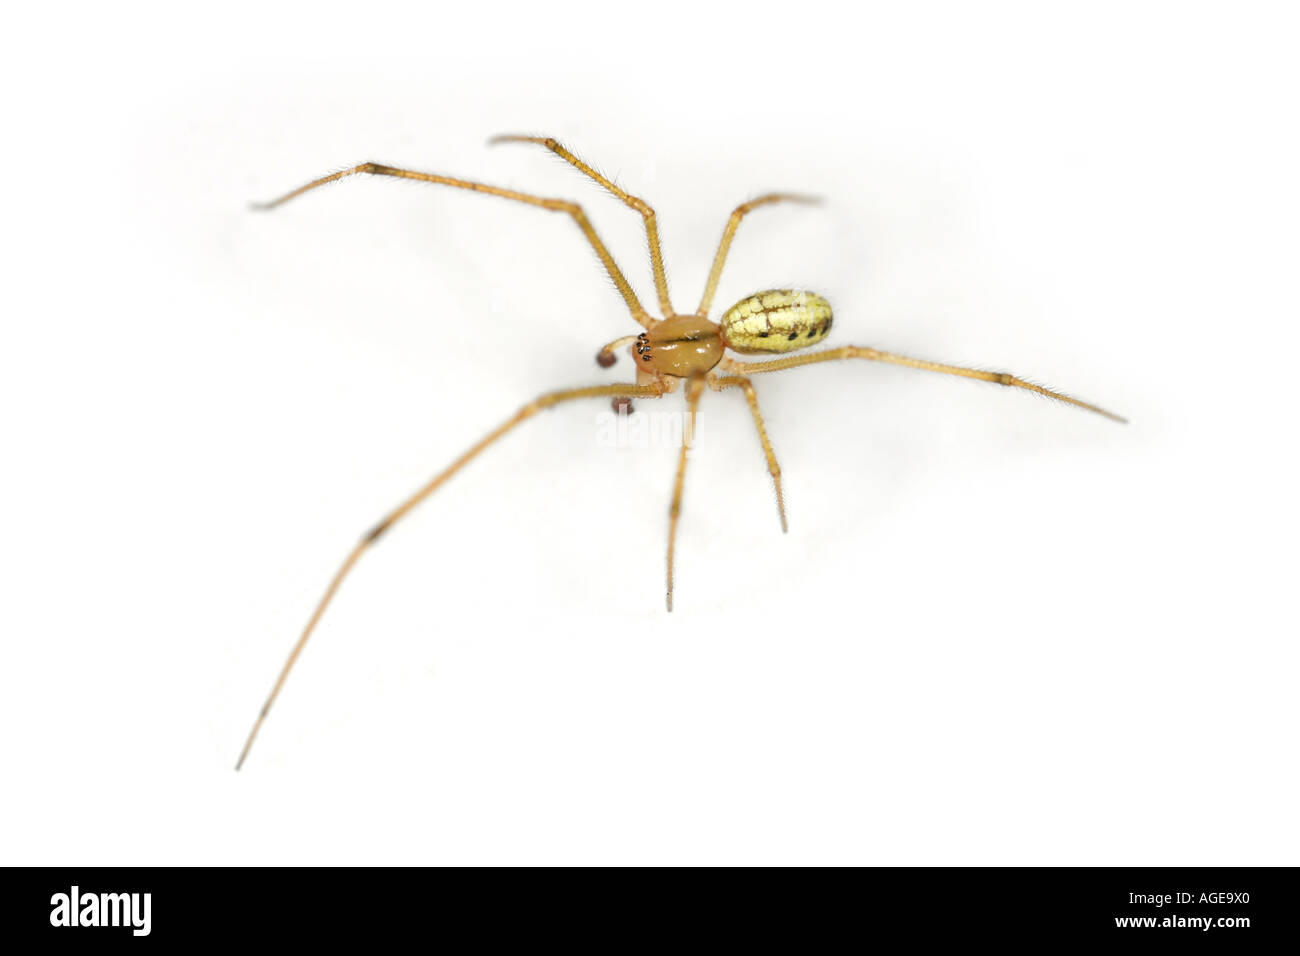 Enoplognata Ovata, a small Comb-footed spider with dark dots on the sides, this specimen has a yellow back body. - Stock Image